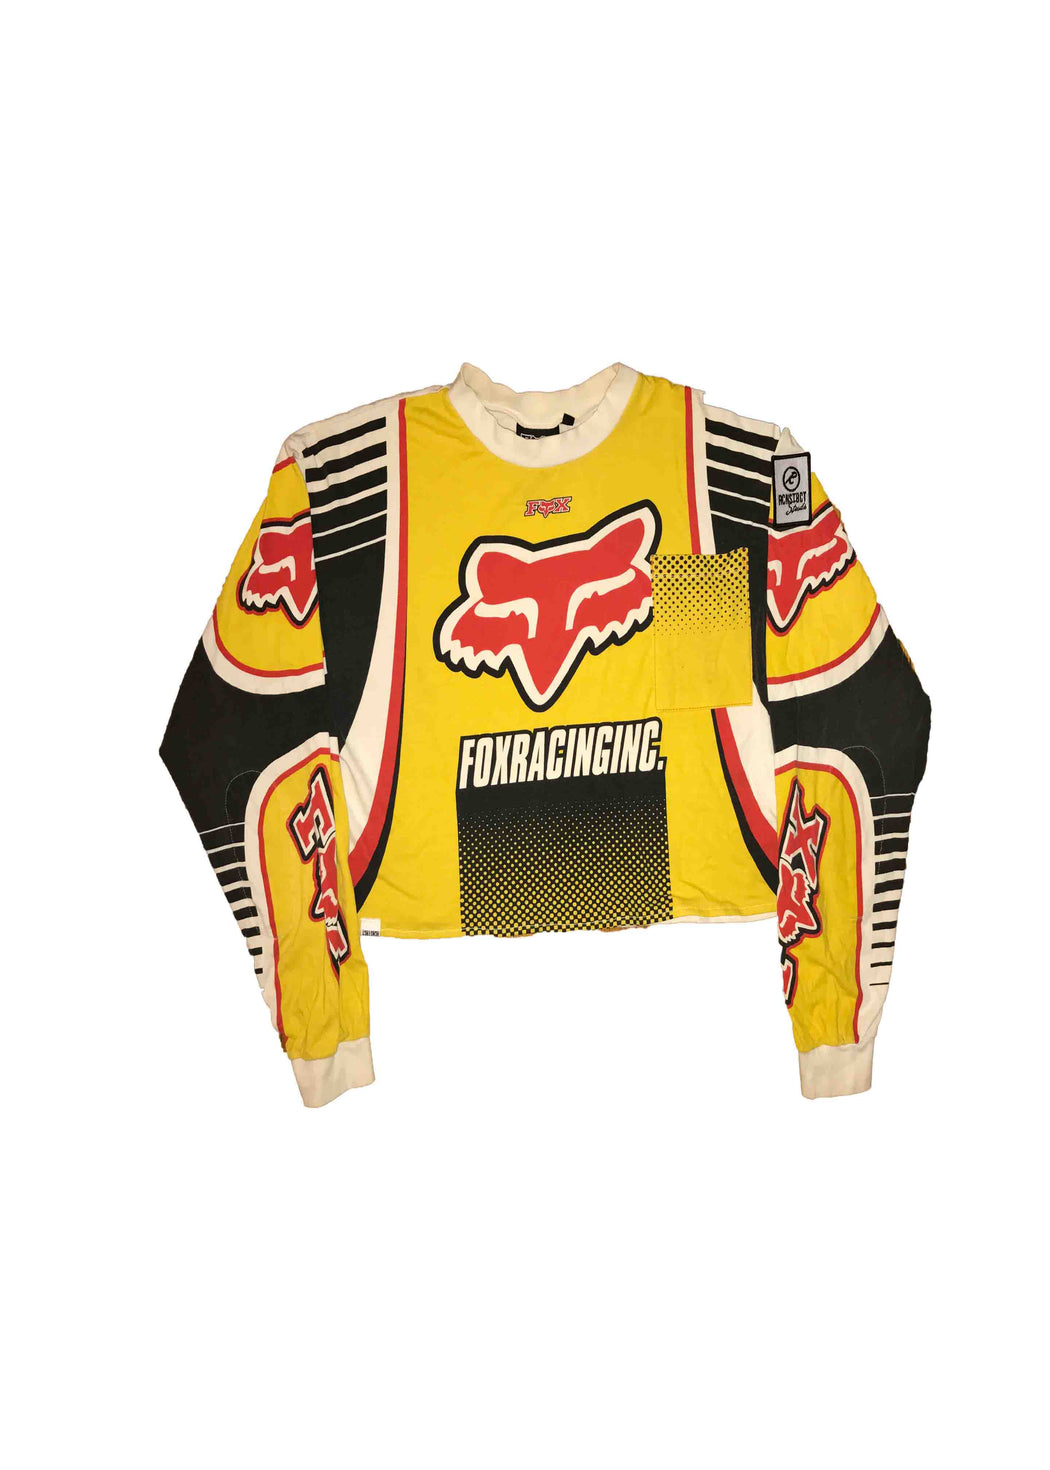 FOX RACING // YELLOW CROP